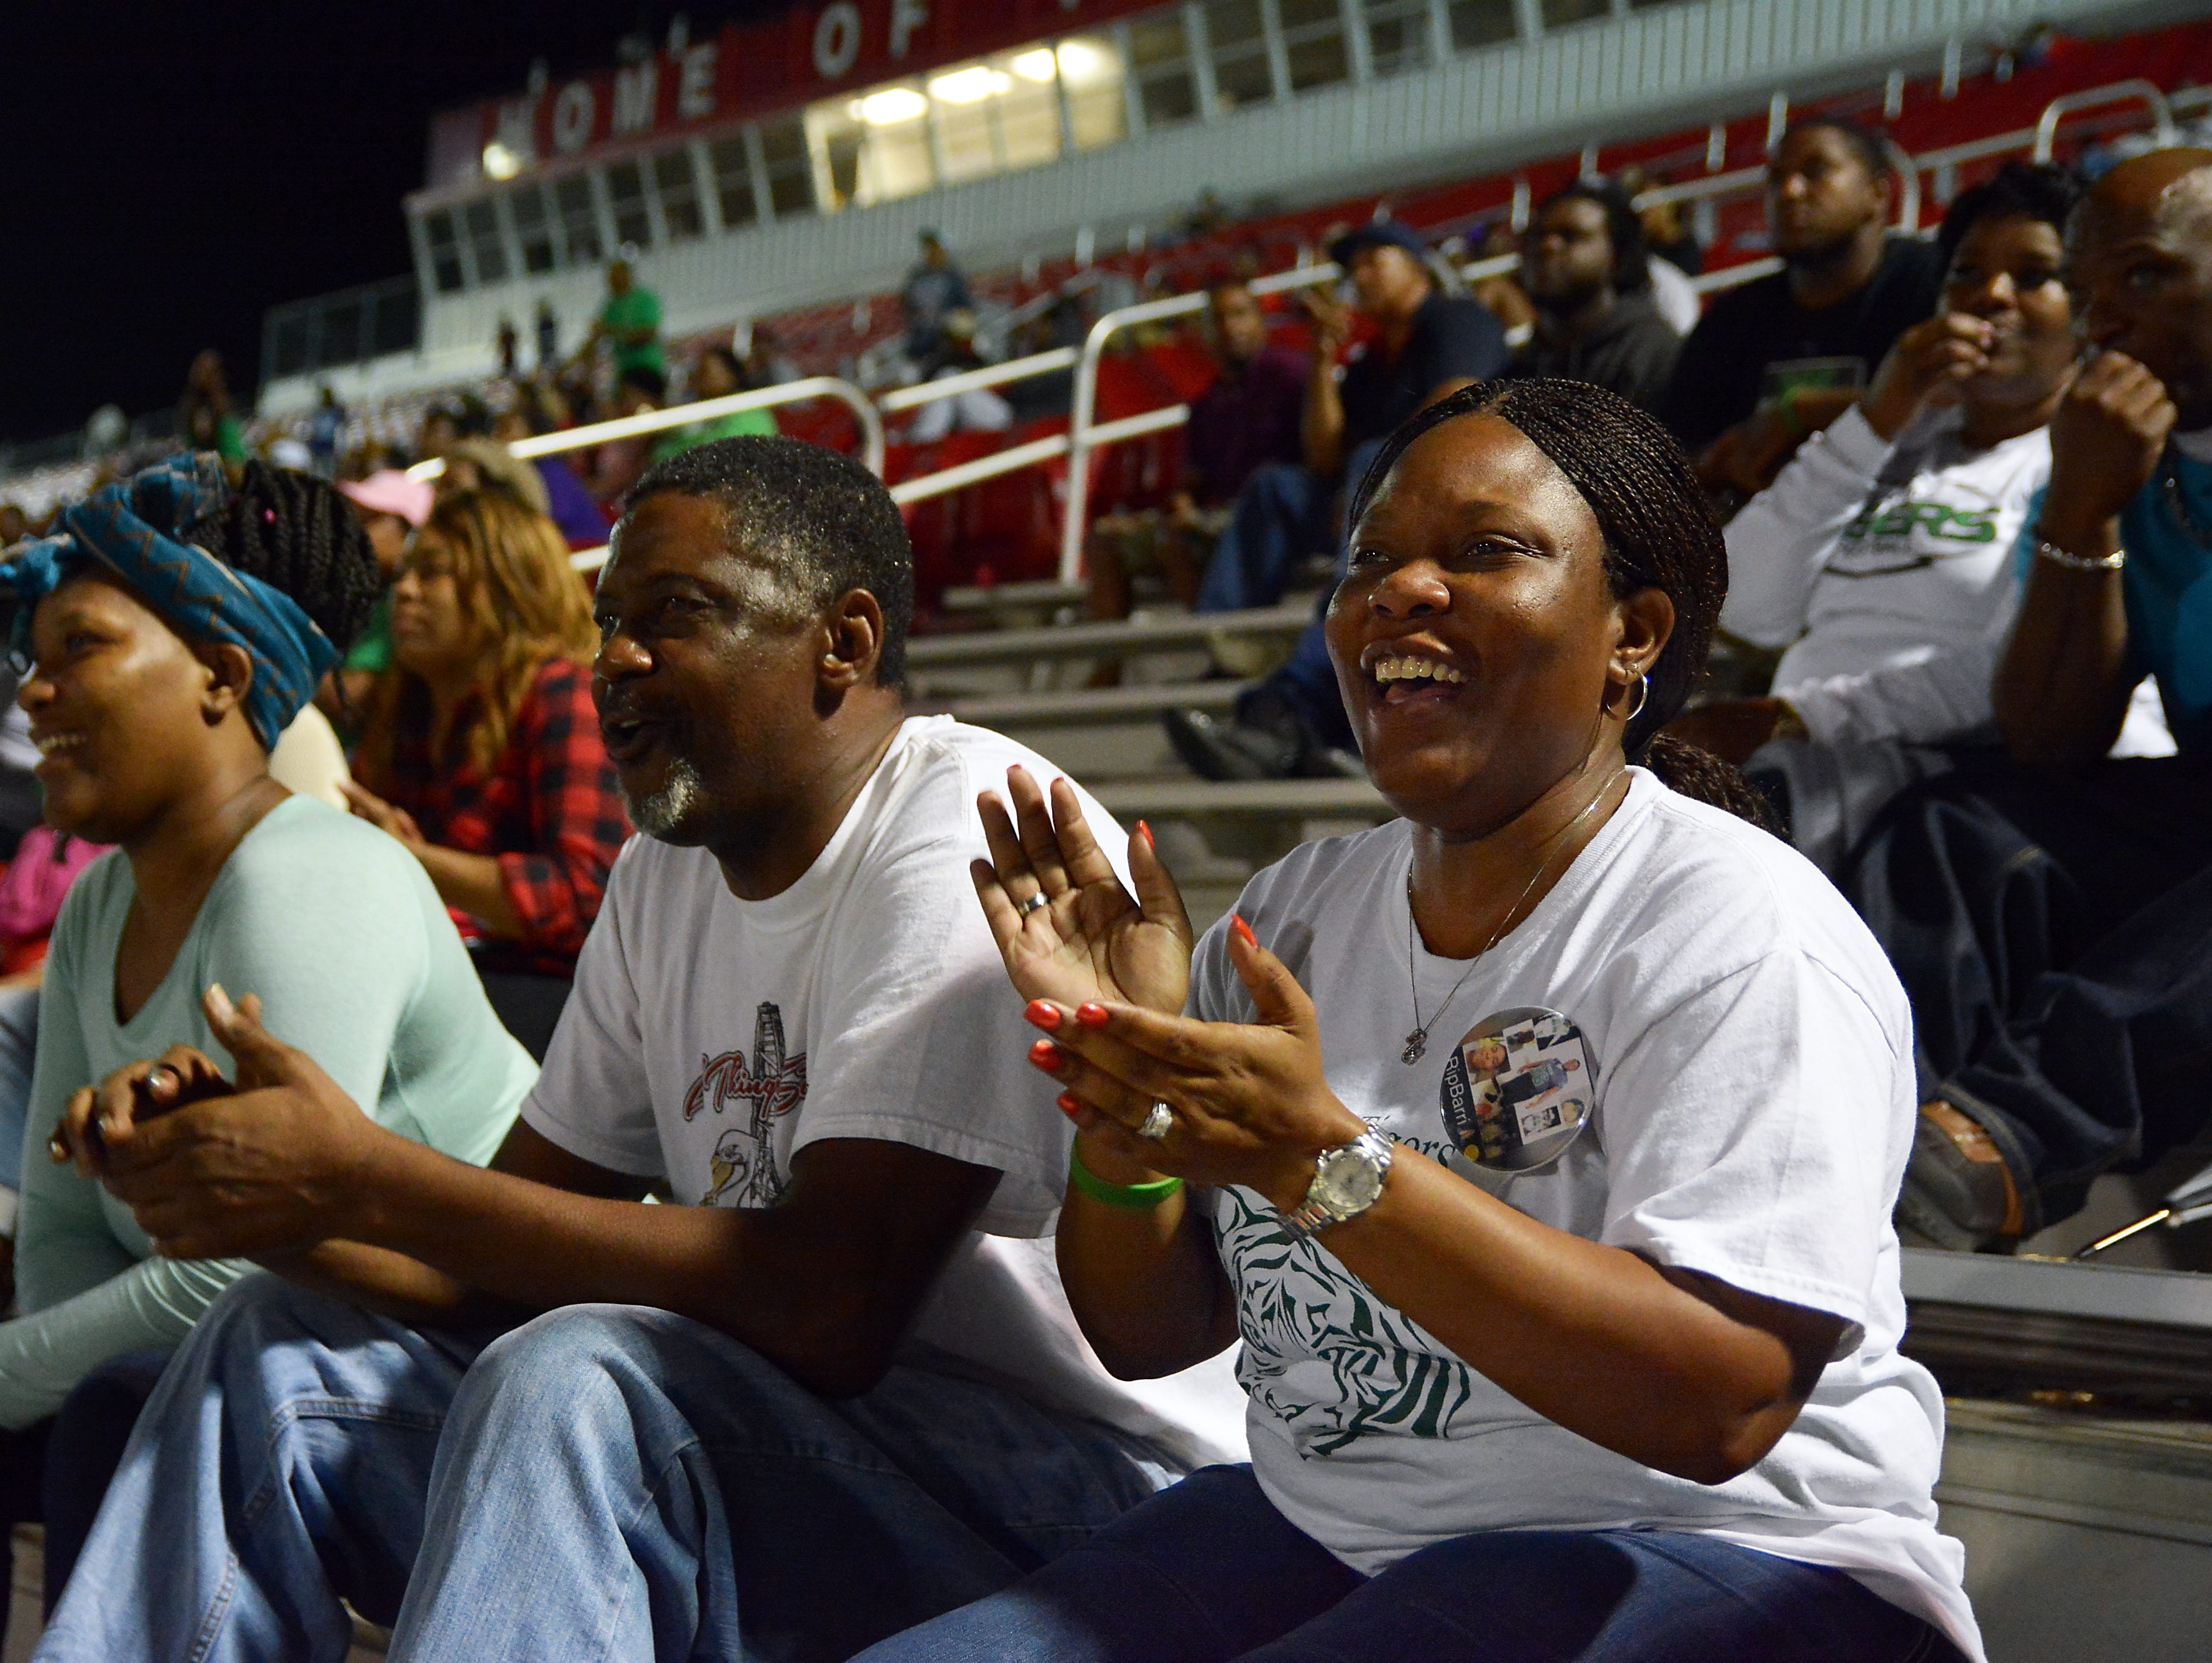 Montoyia McInnis, right, mother of former Collins High football player Jabarri Goudy, looks on during the Tigers' first-round playoff game Nov. 6. Goudy was killed in a shooting in July outside Club Memories in Hattiesburg.